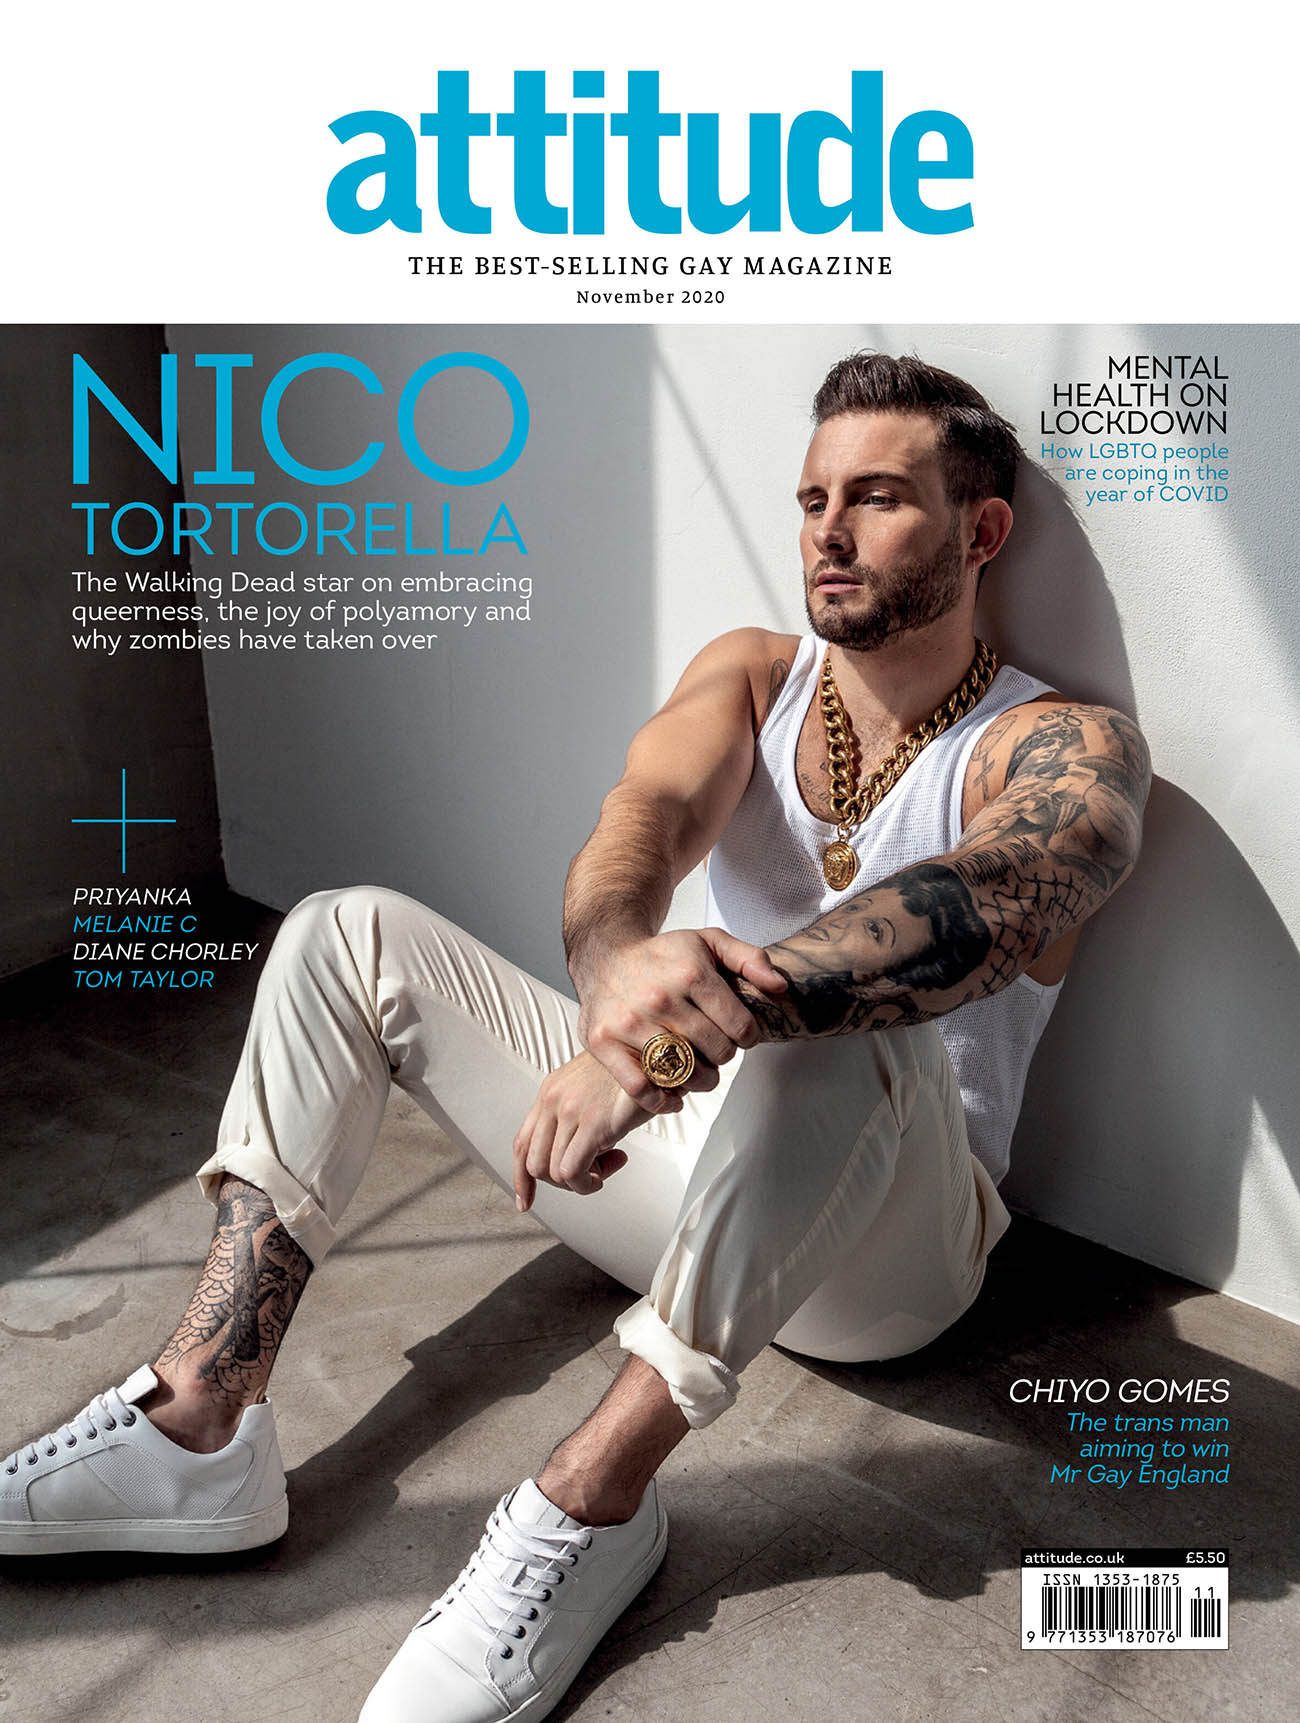 Nico Tortorella covers Attitude Magazine November 2020 by Harol Baez